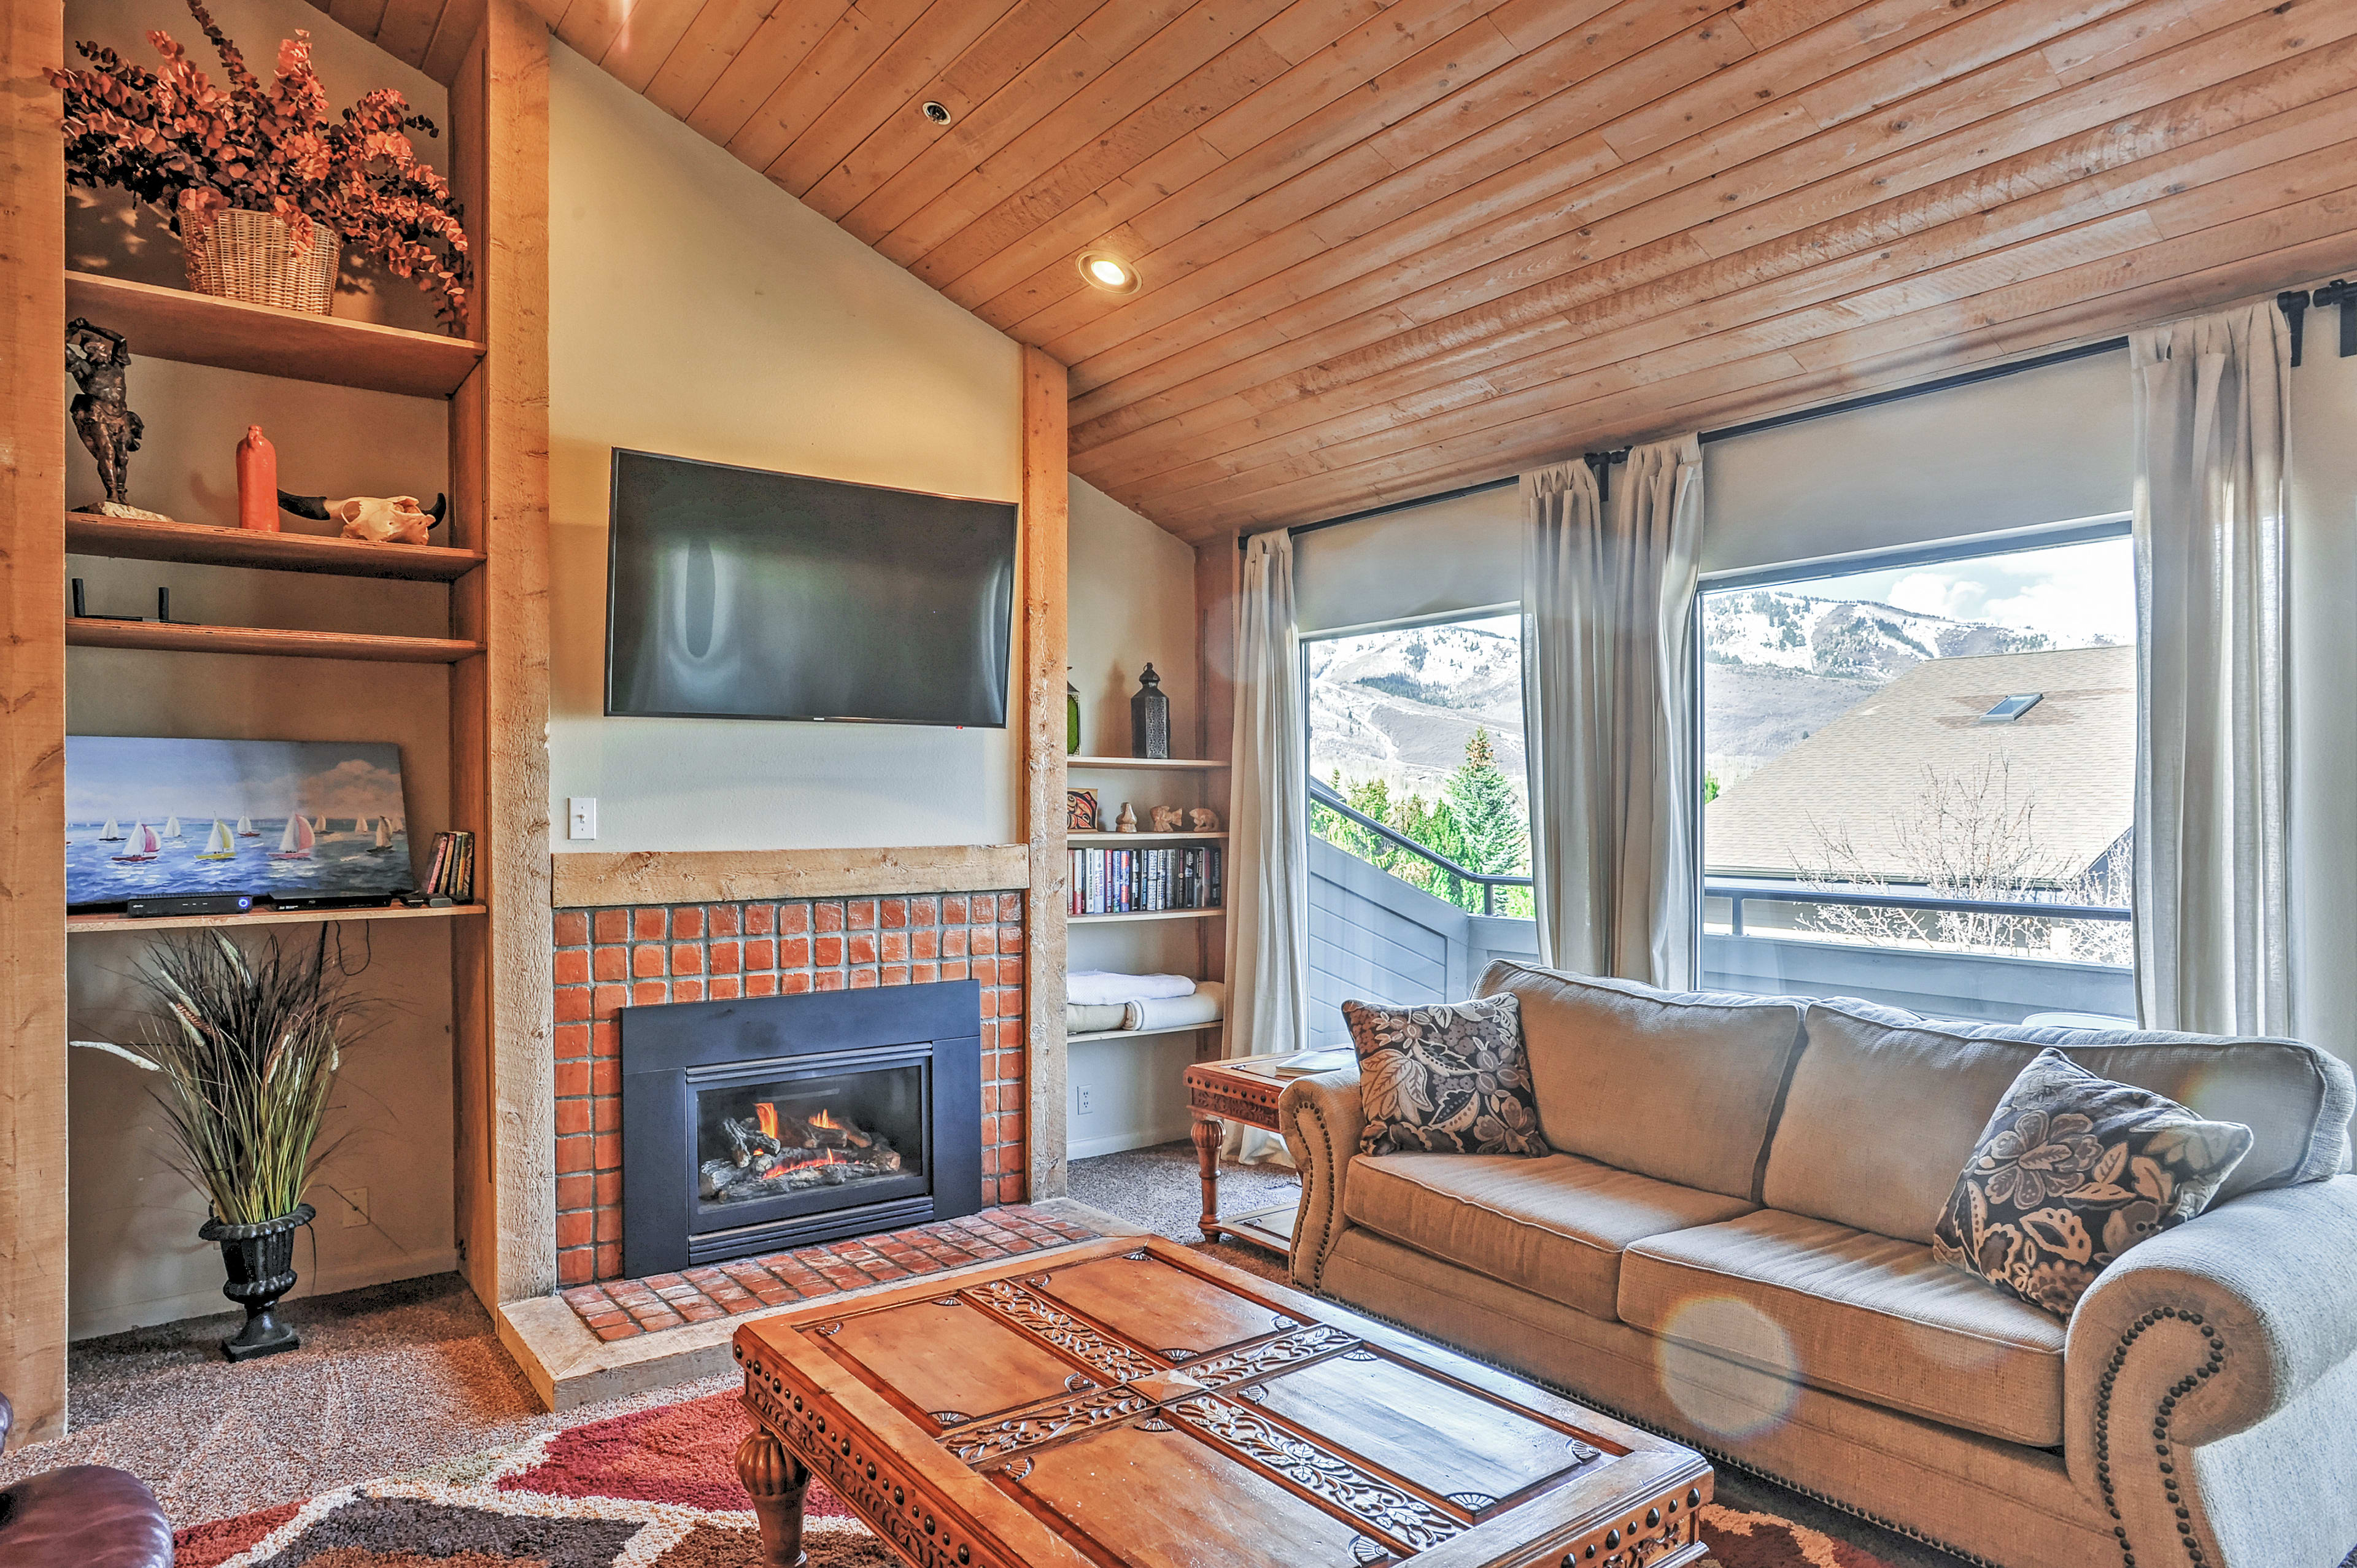 Park City Vacation Rental | 3BR | 3BA | 2,000 Sq Ft | Stairs Required to Access